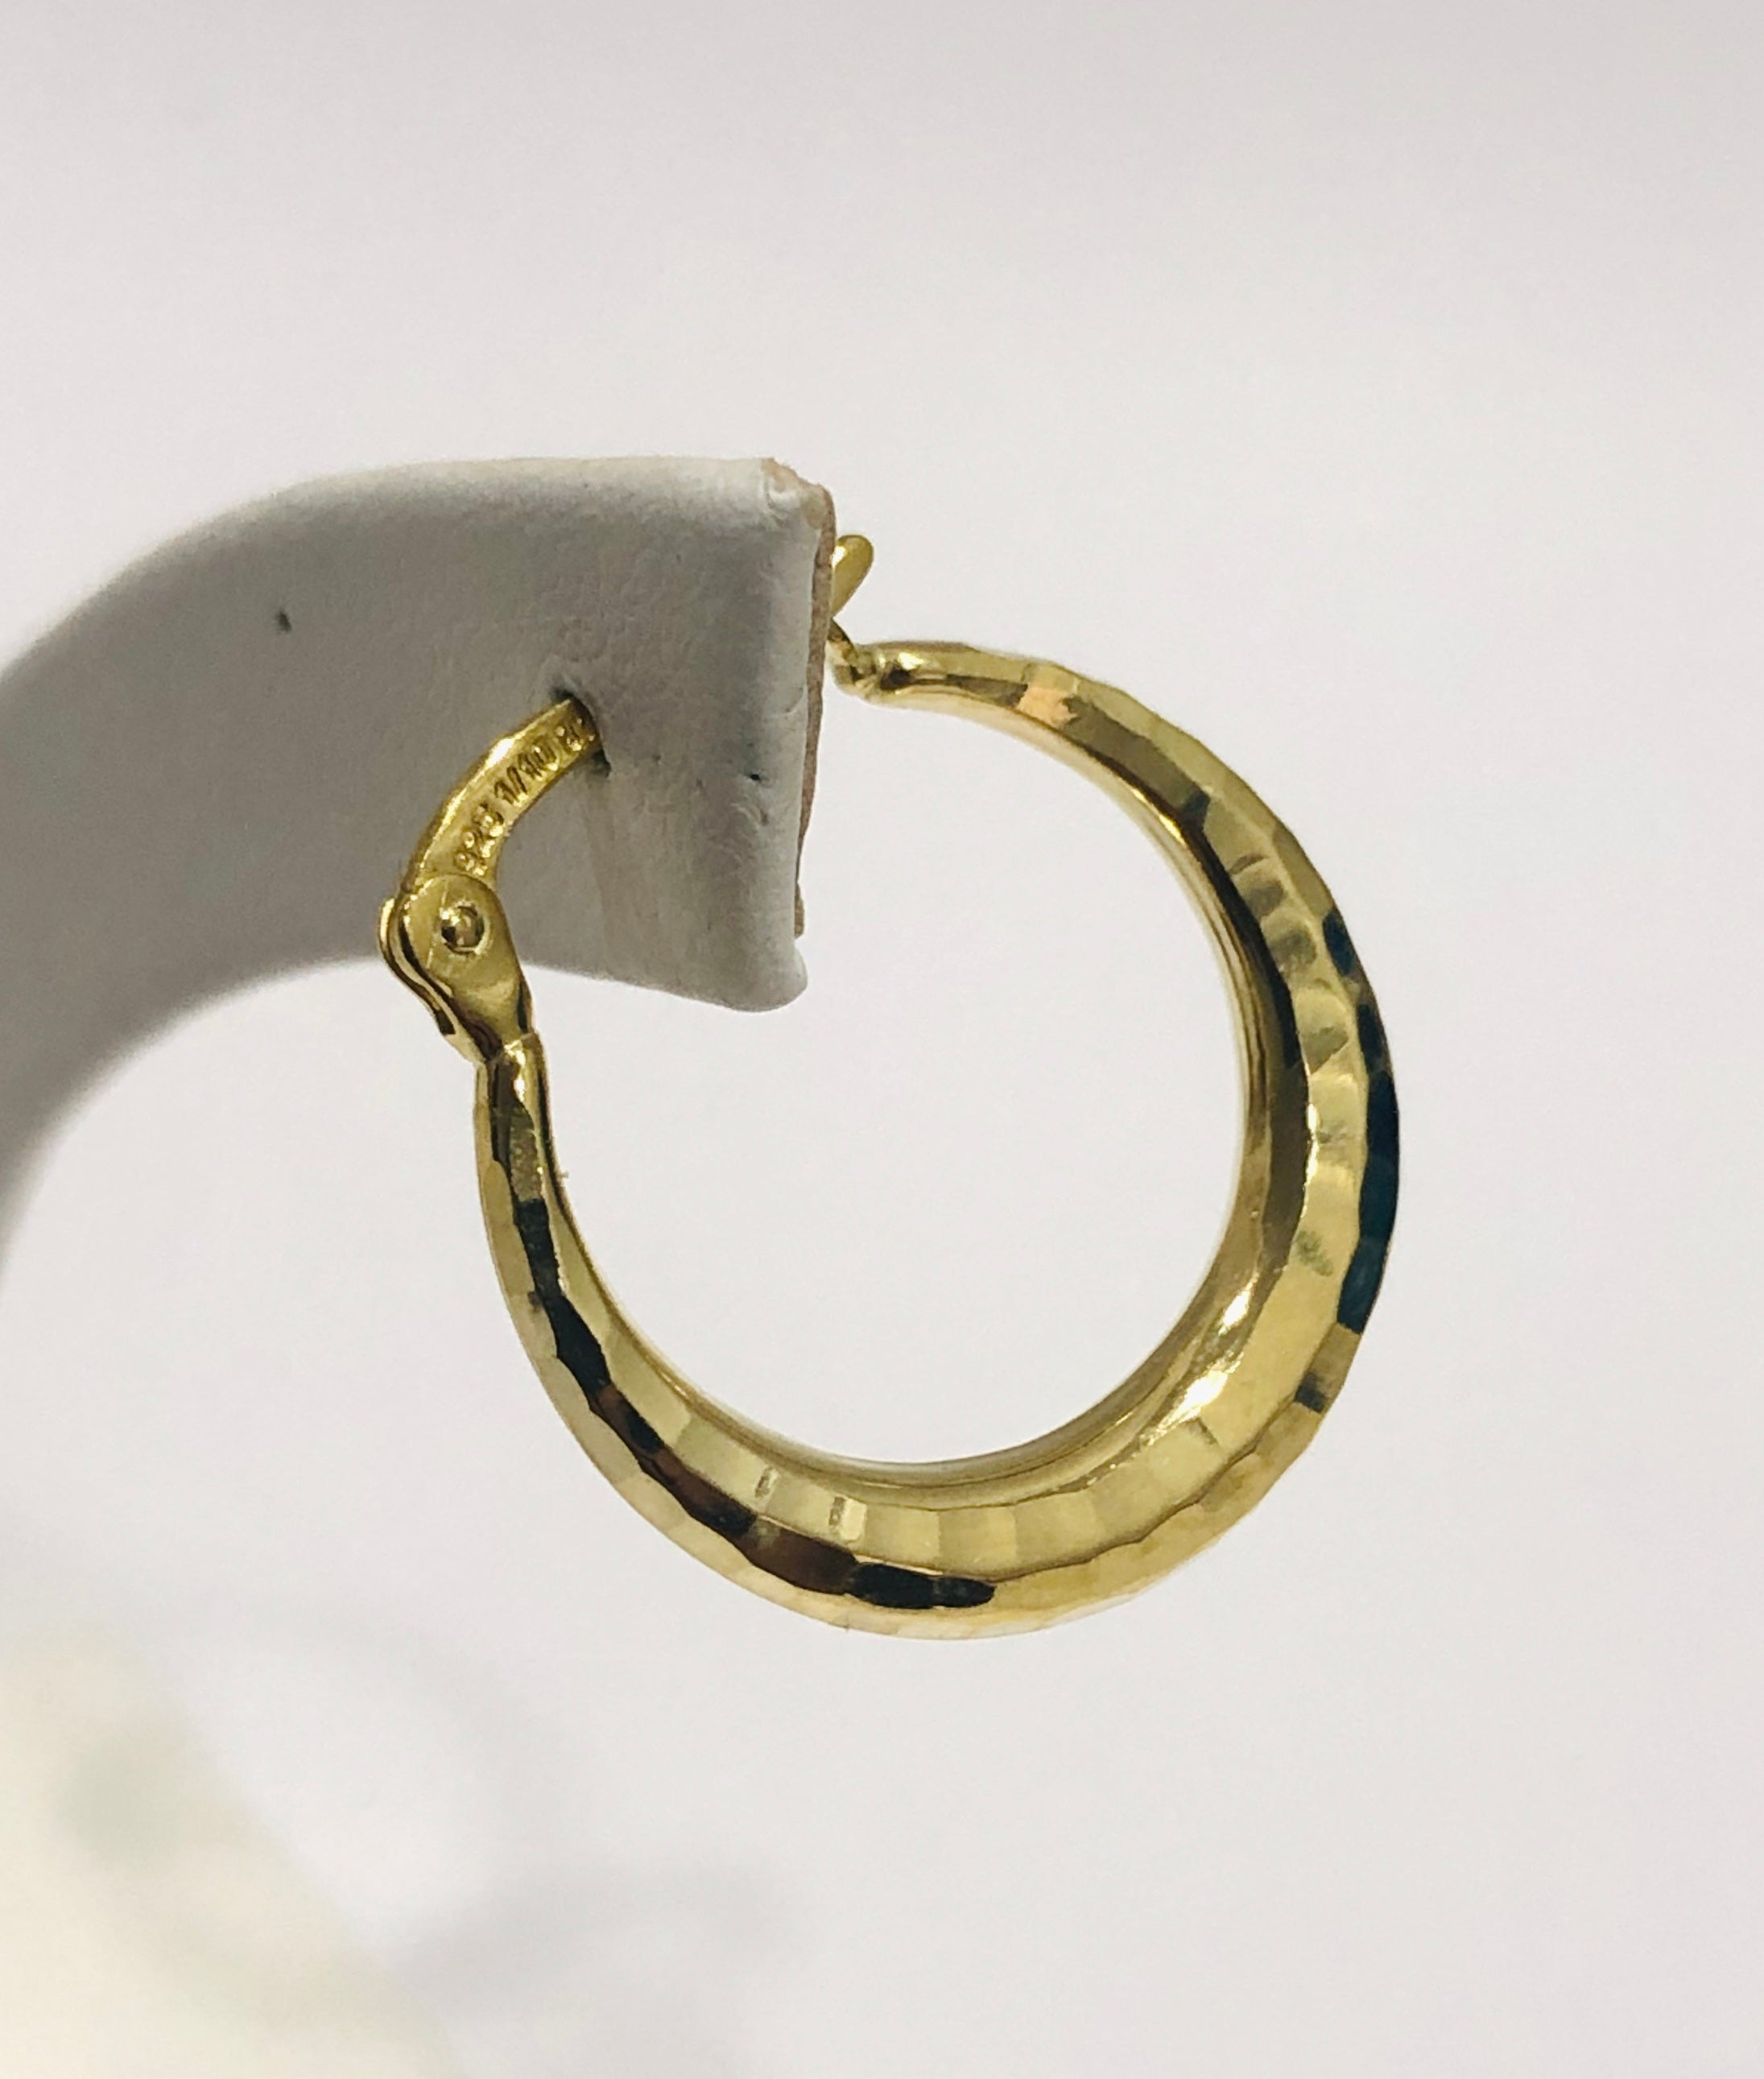 9ct Yellow Gold Silver Filled Polished 19mm Hoop Earrings